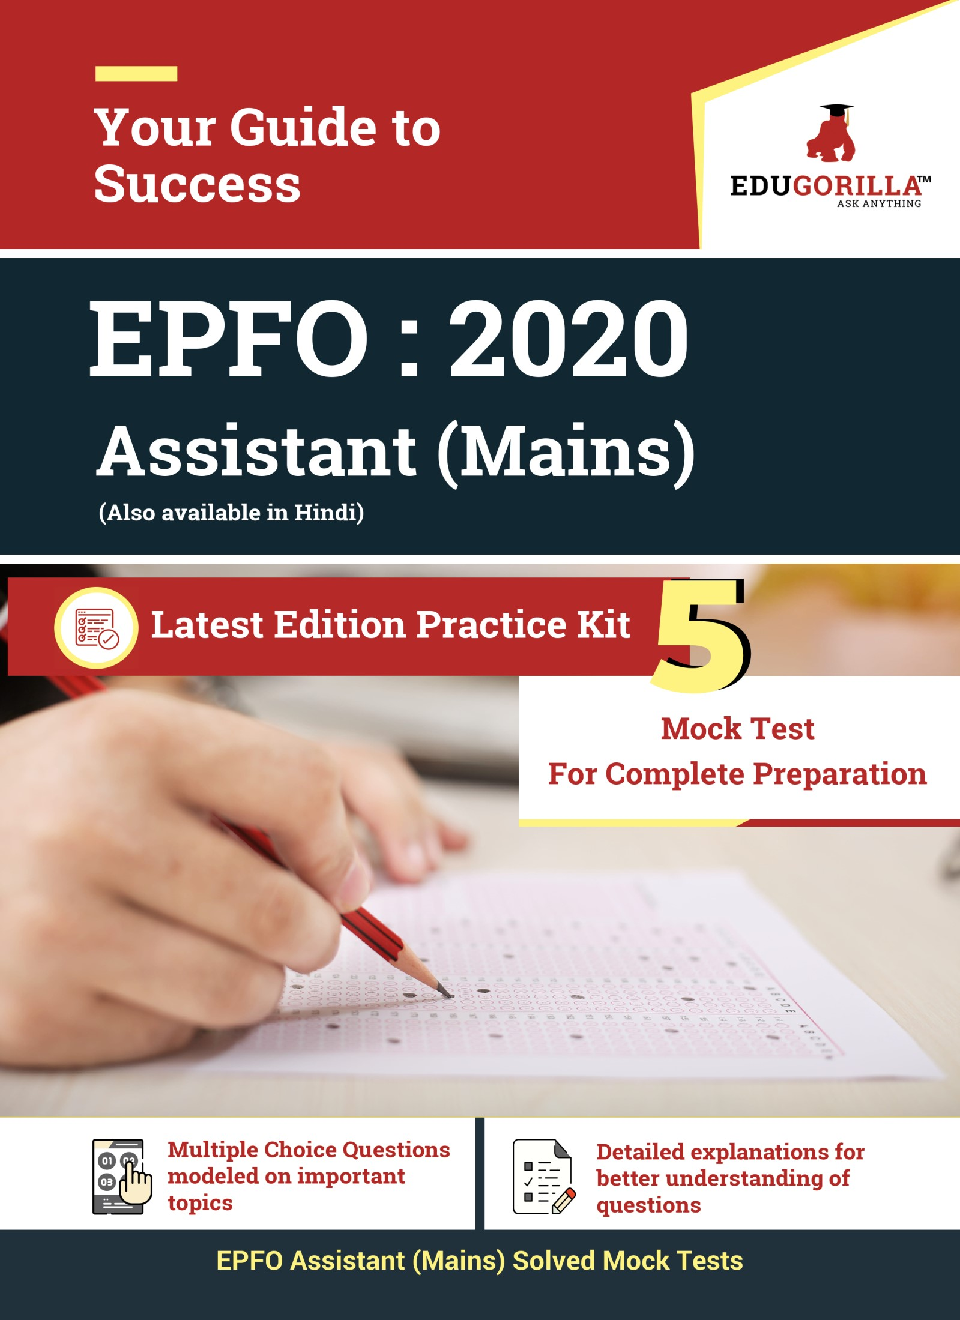 EduGorilla EPFO Assistant (Mains) - 2020 - 5 Mock Test - Latest Edition Practice Kit - Page 1